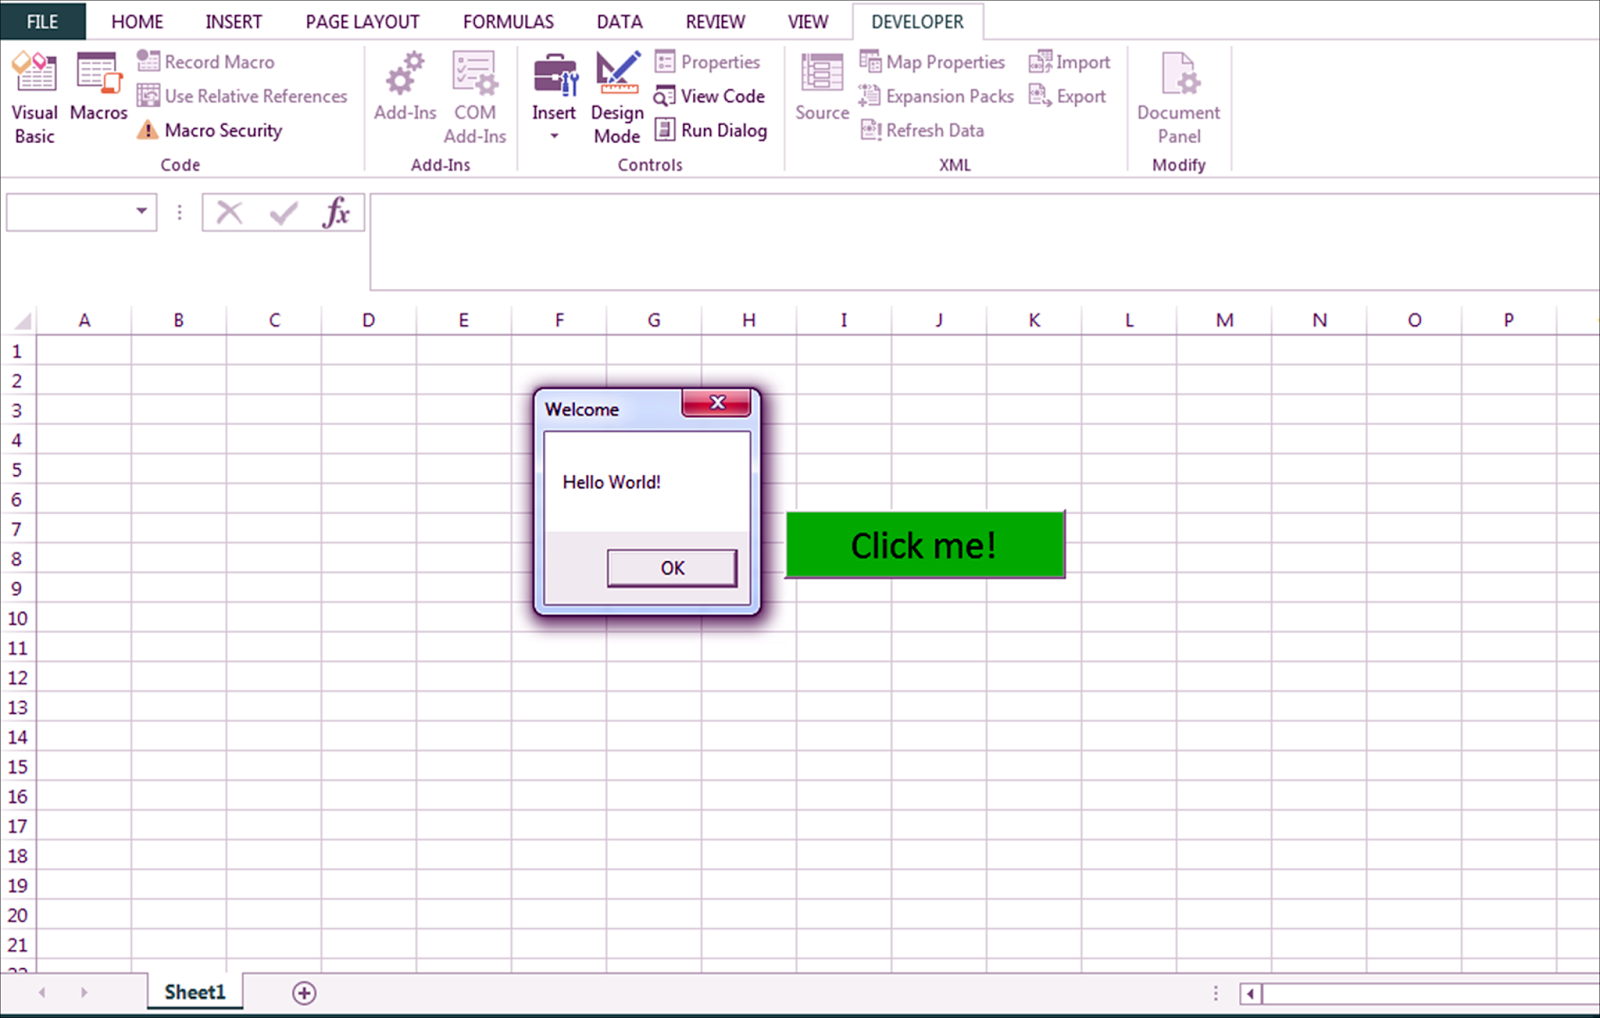 Workbooks create excel workbook : How to create a message box in excel using VBA and pop up whenever ...